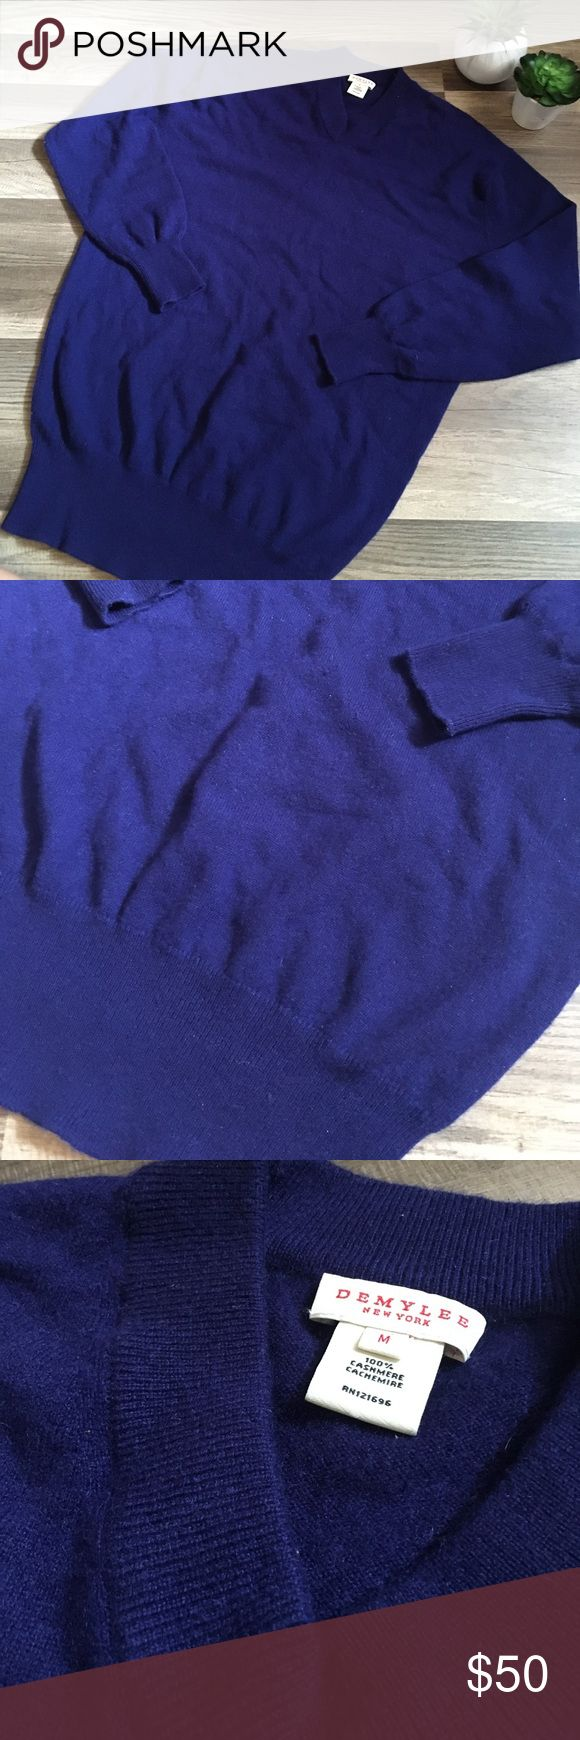 "DEMYLER Neiman Marcus 100% cashmere  sweater m DEMYLER New York brand, size M. 100% cashmere blue color. Excellent shape. Length 28"" 21"" underarm to underarm DEMYLER Sweaters V-Necks"